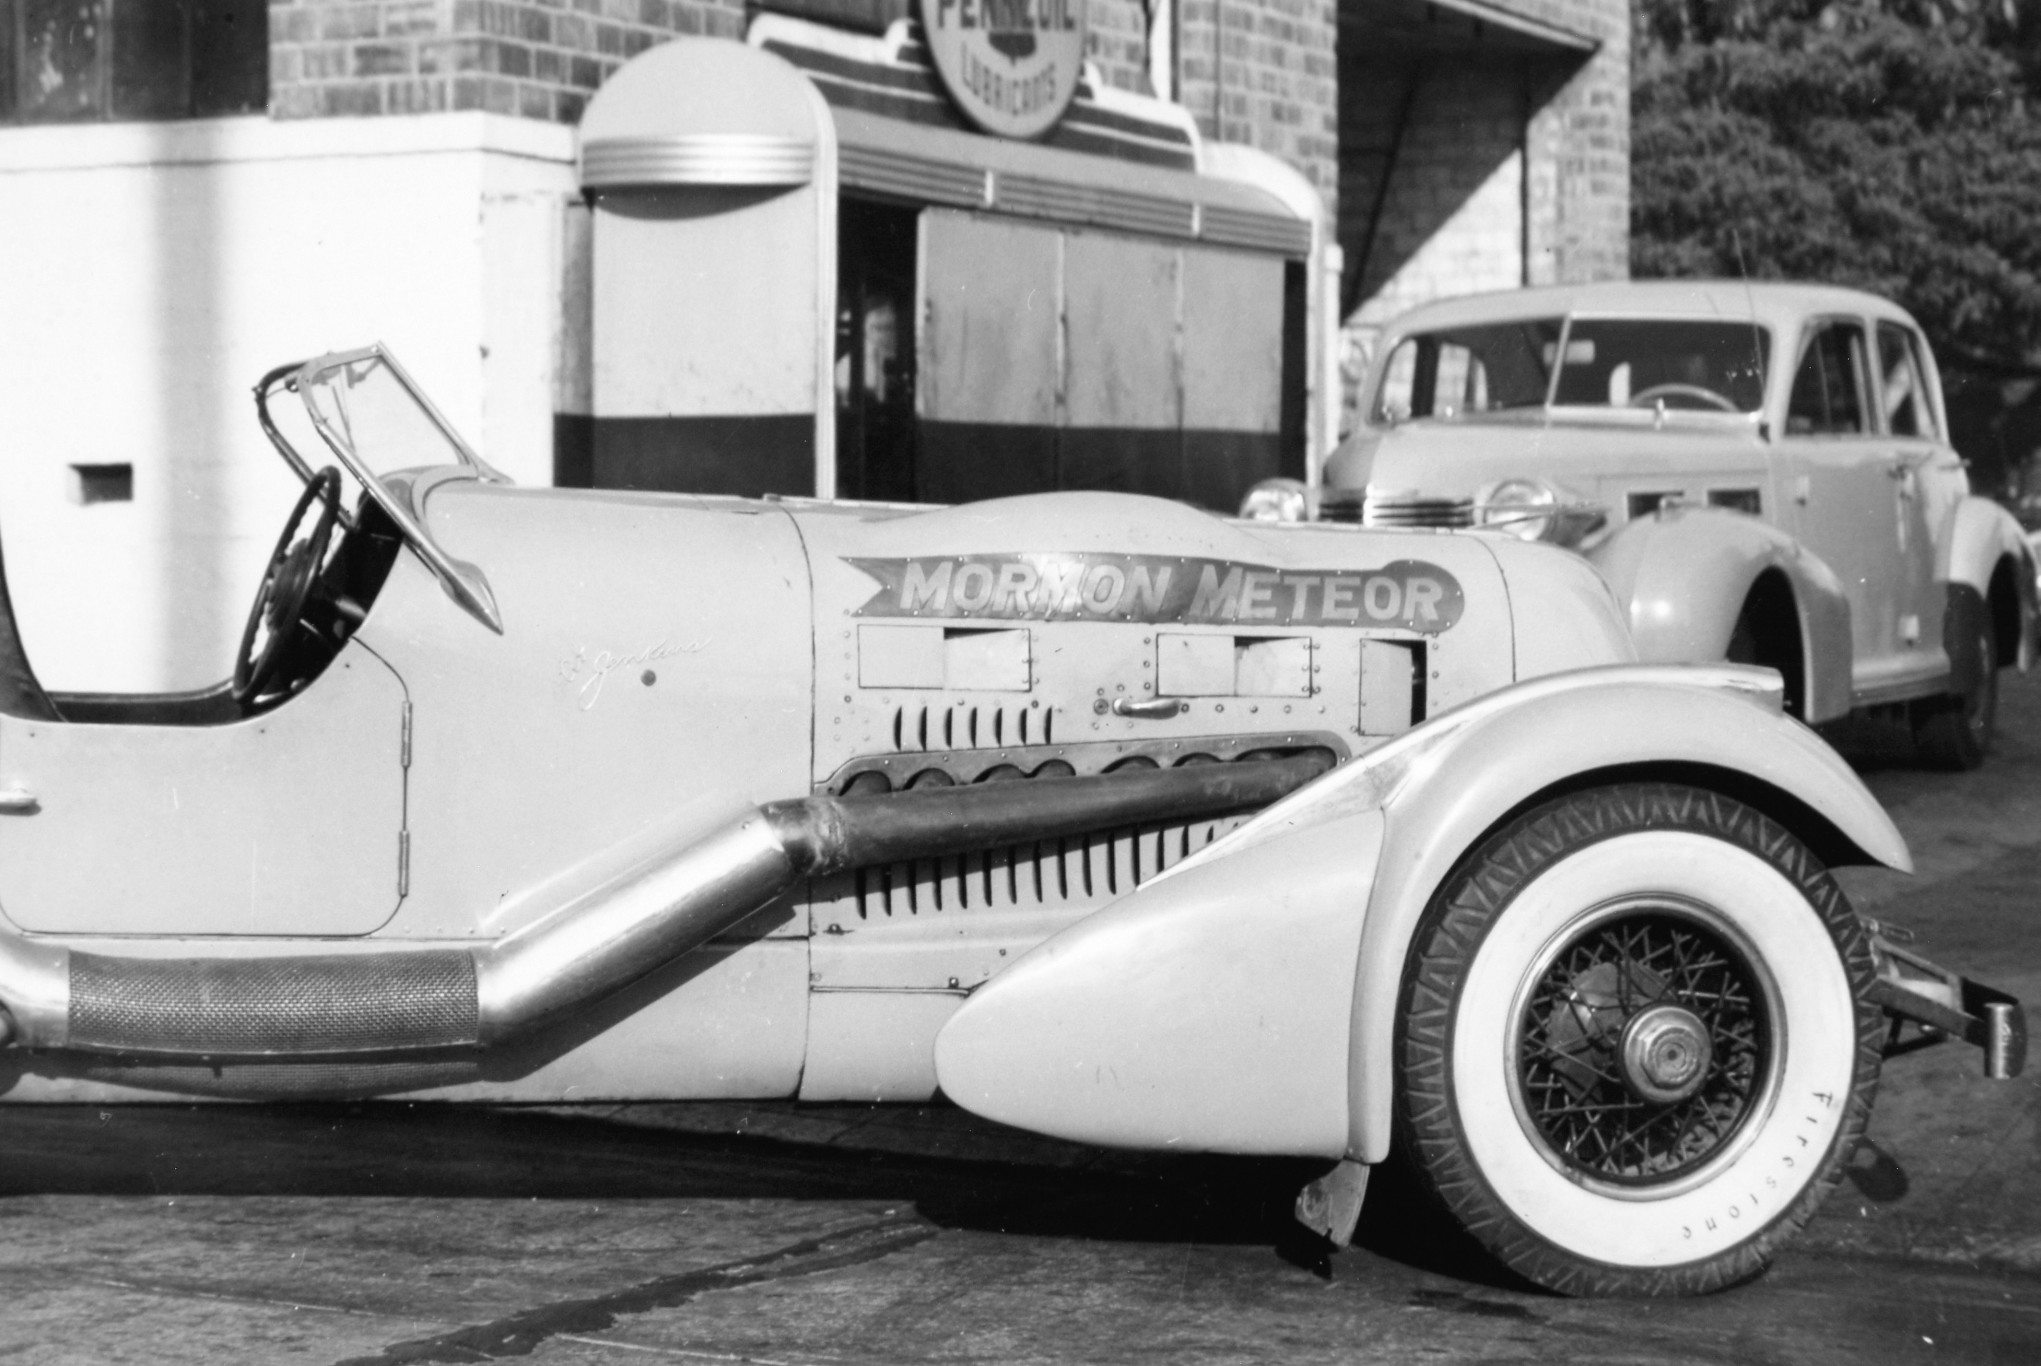 Duesenberg Morman Meteor Whitewall Model J Wheels